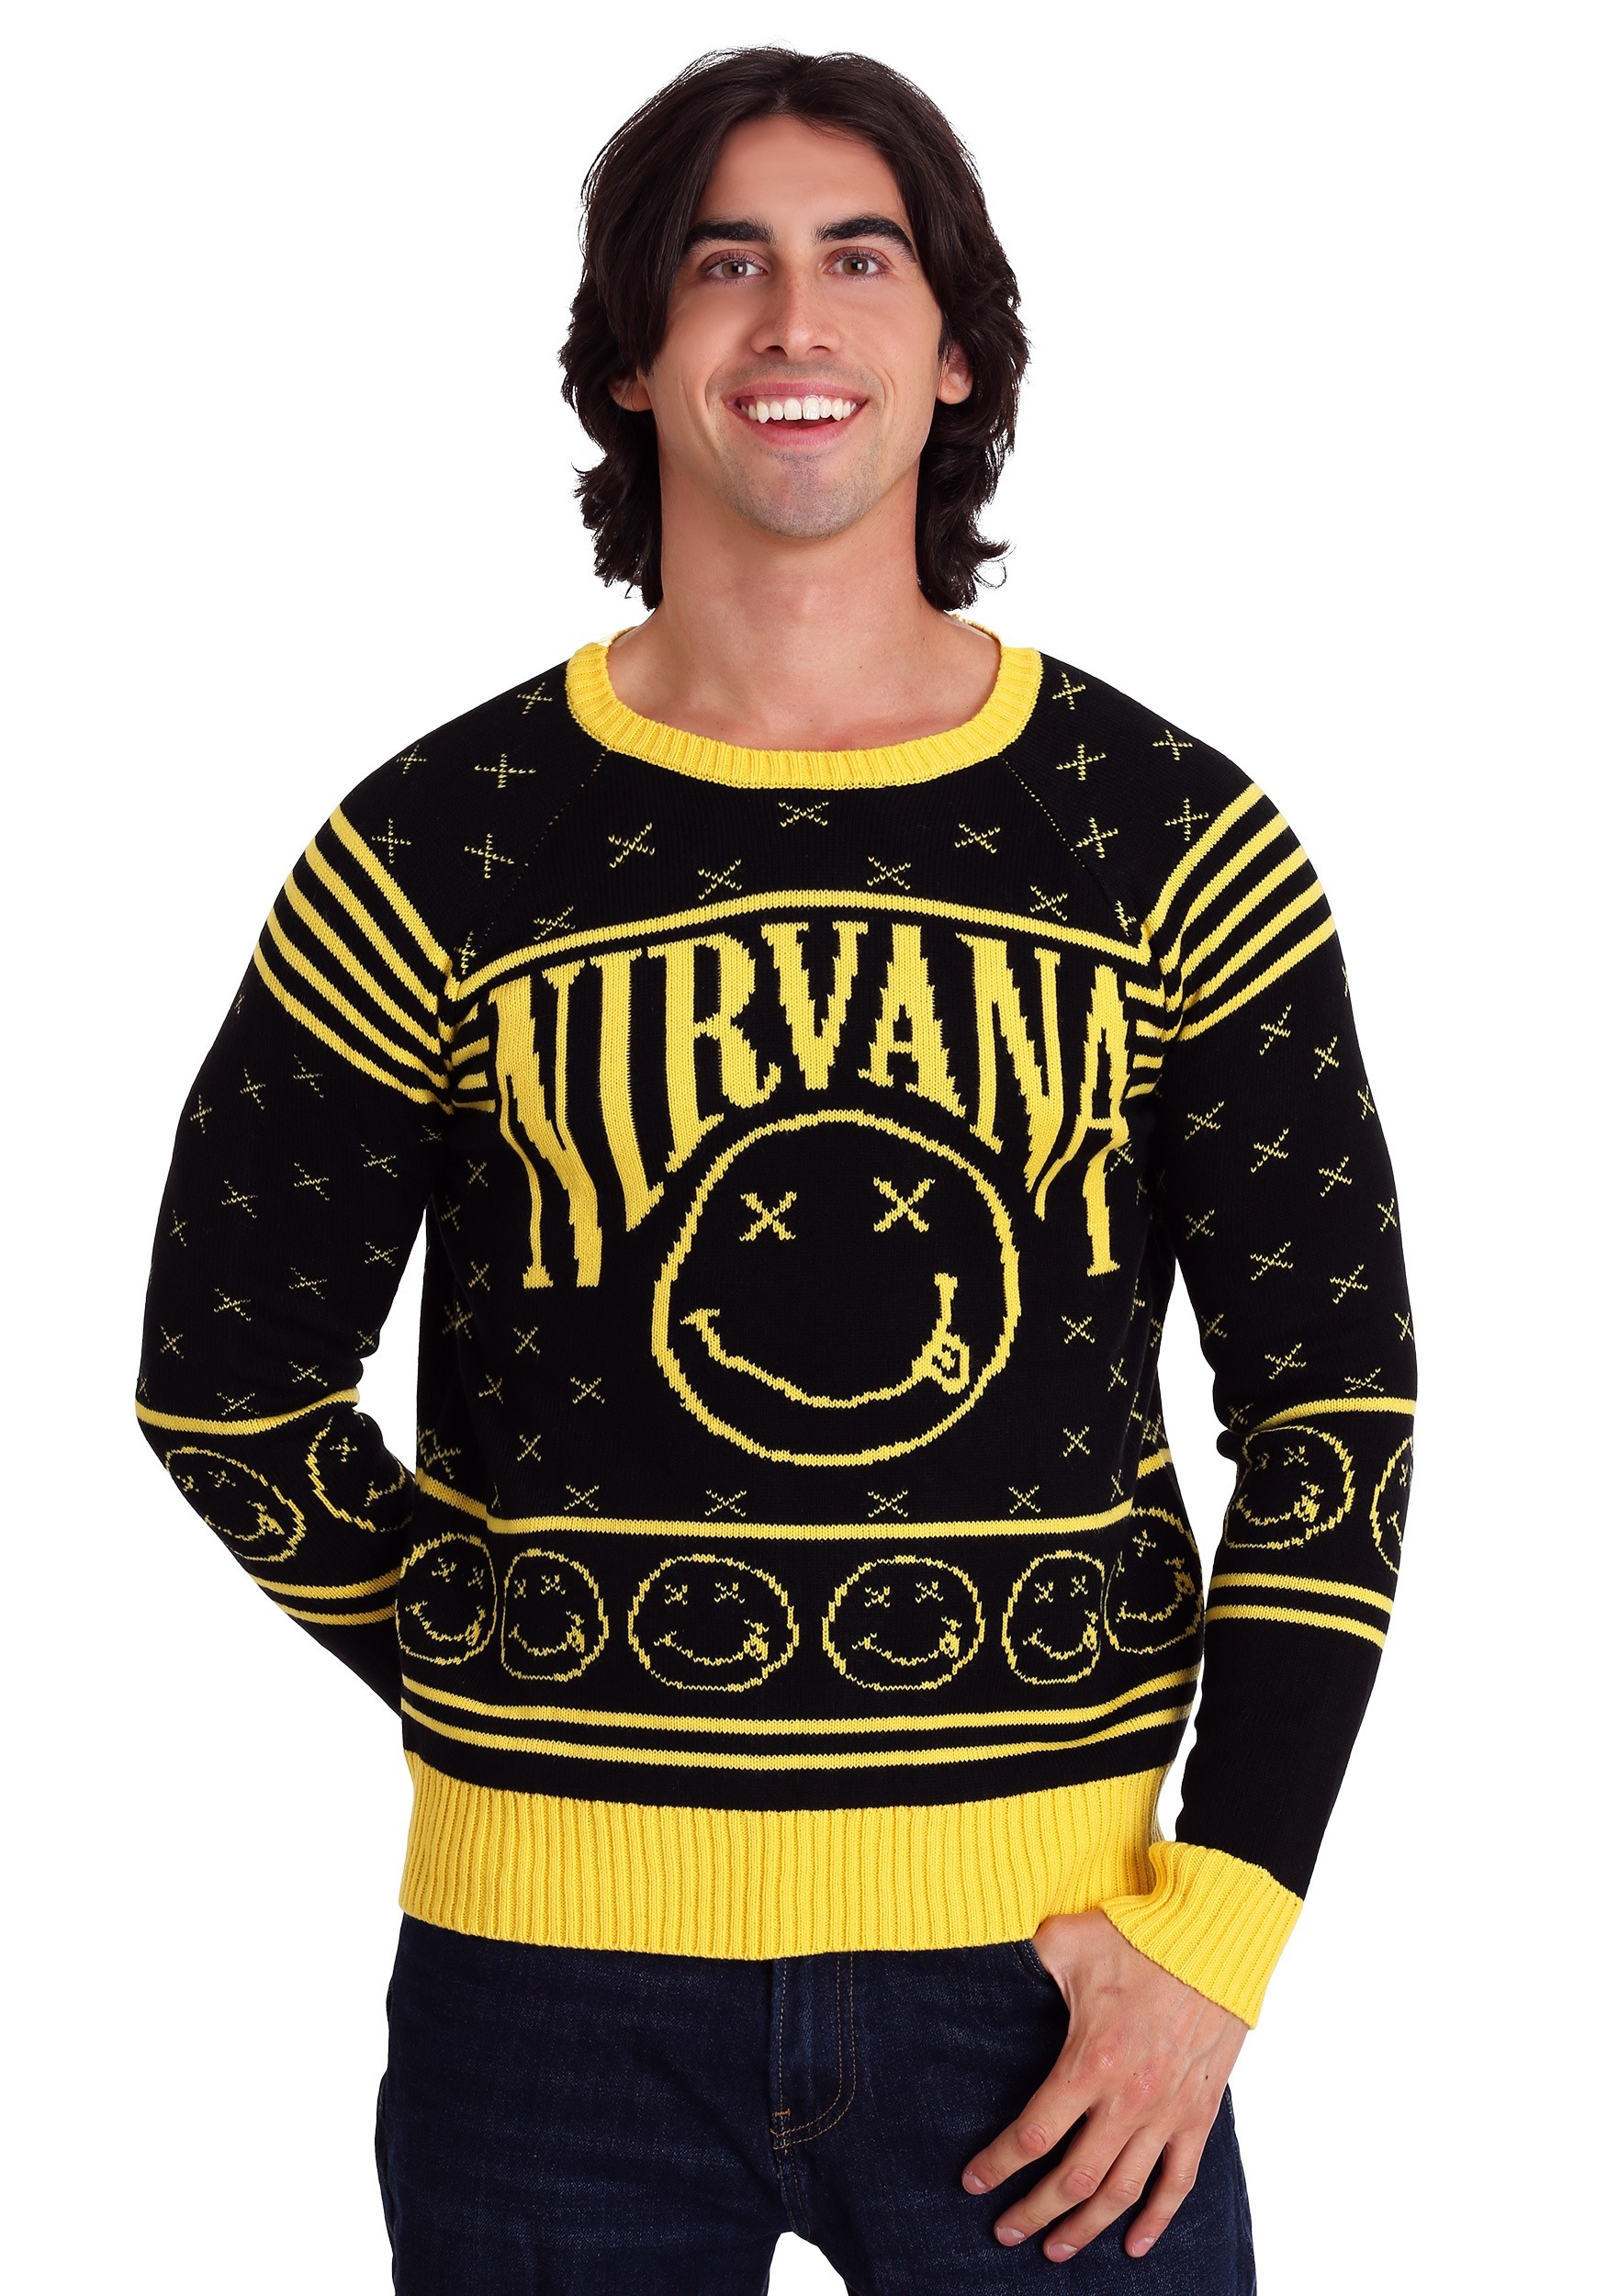 e56510379d0 Nirvana Smiley Pattern Ugly Christmas Sweater